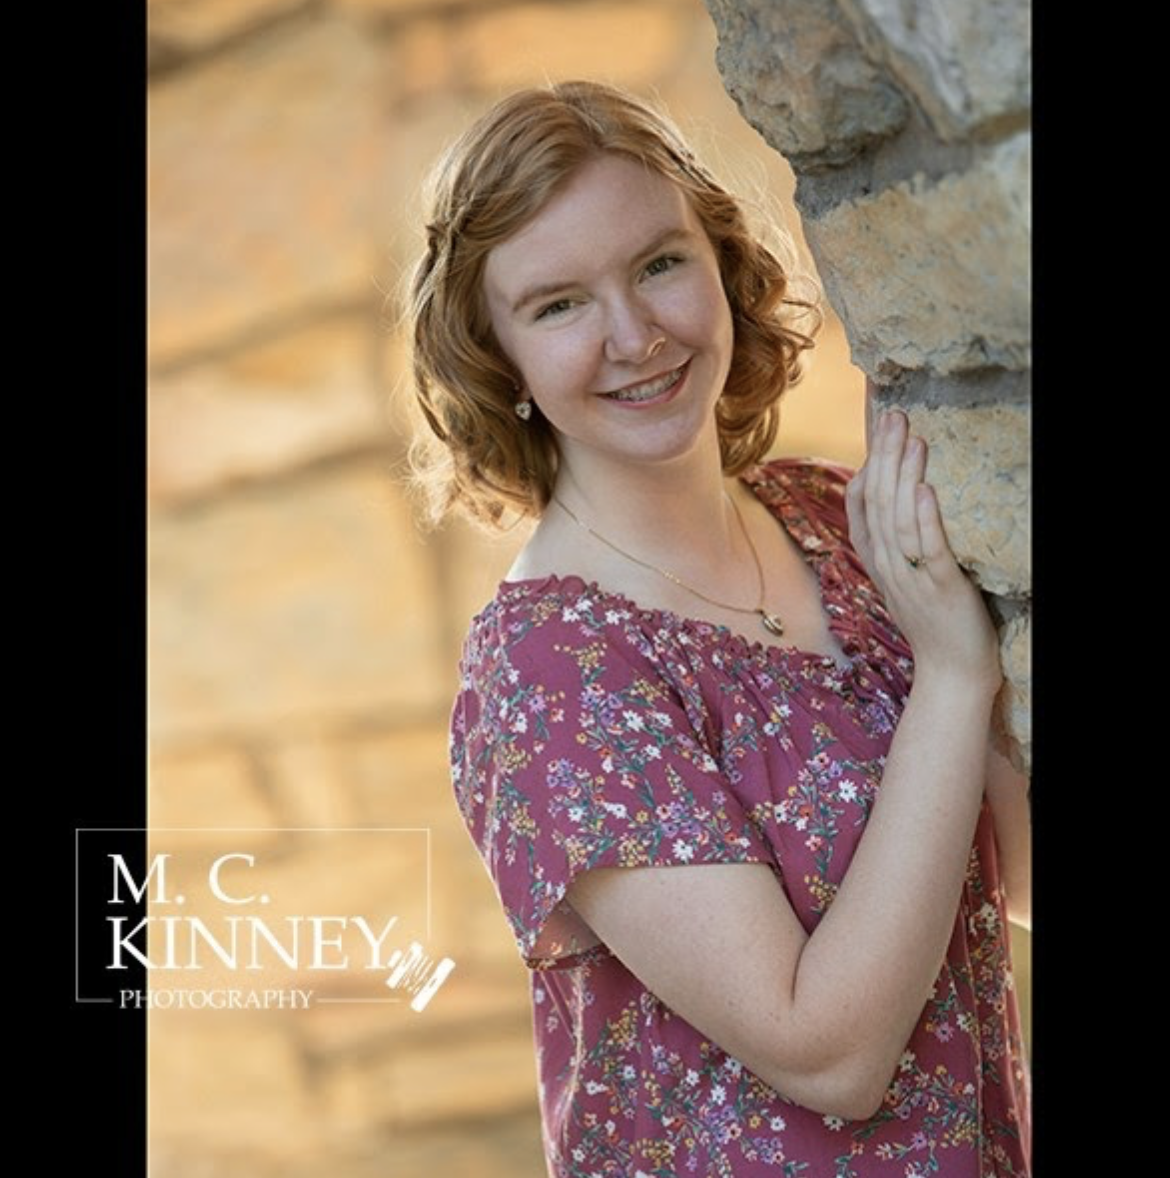 A student with curly, strawberry blonde hair leans against a stone wall and smiles. The photo has a watermark from M.C. Kinney Photography.